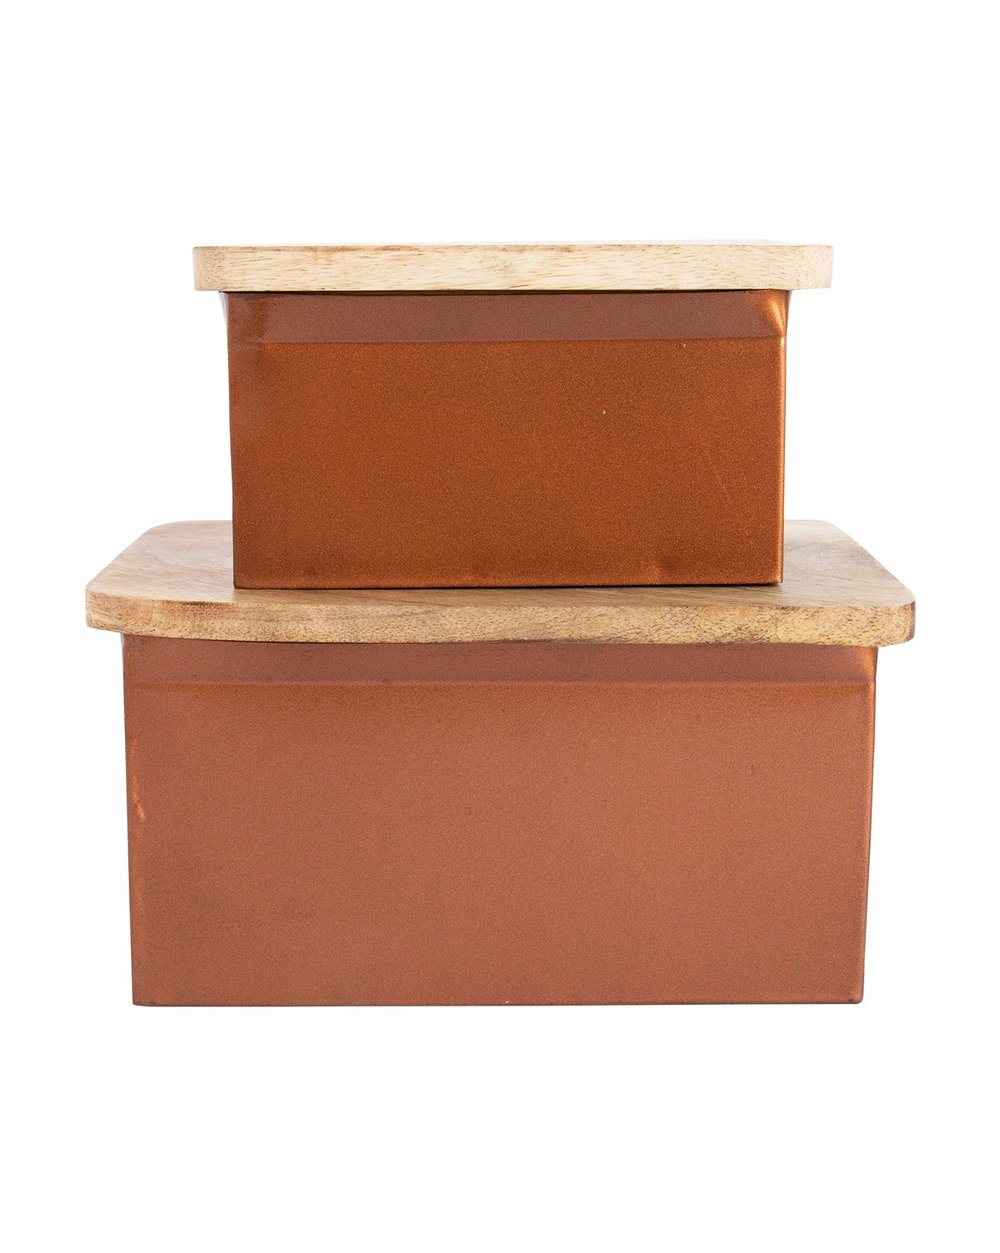 Copper_Boxes_1.jpg